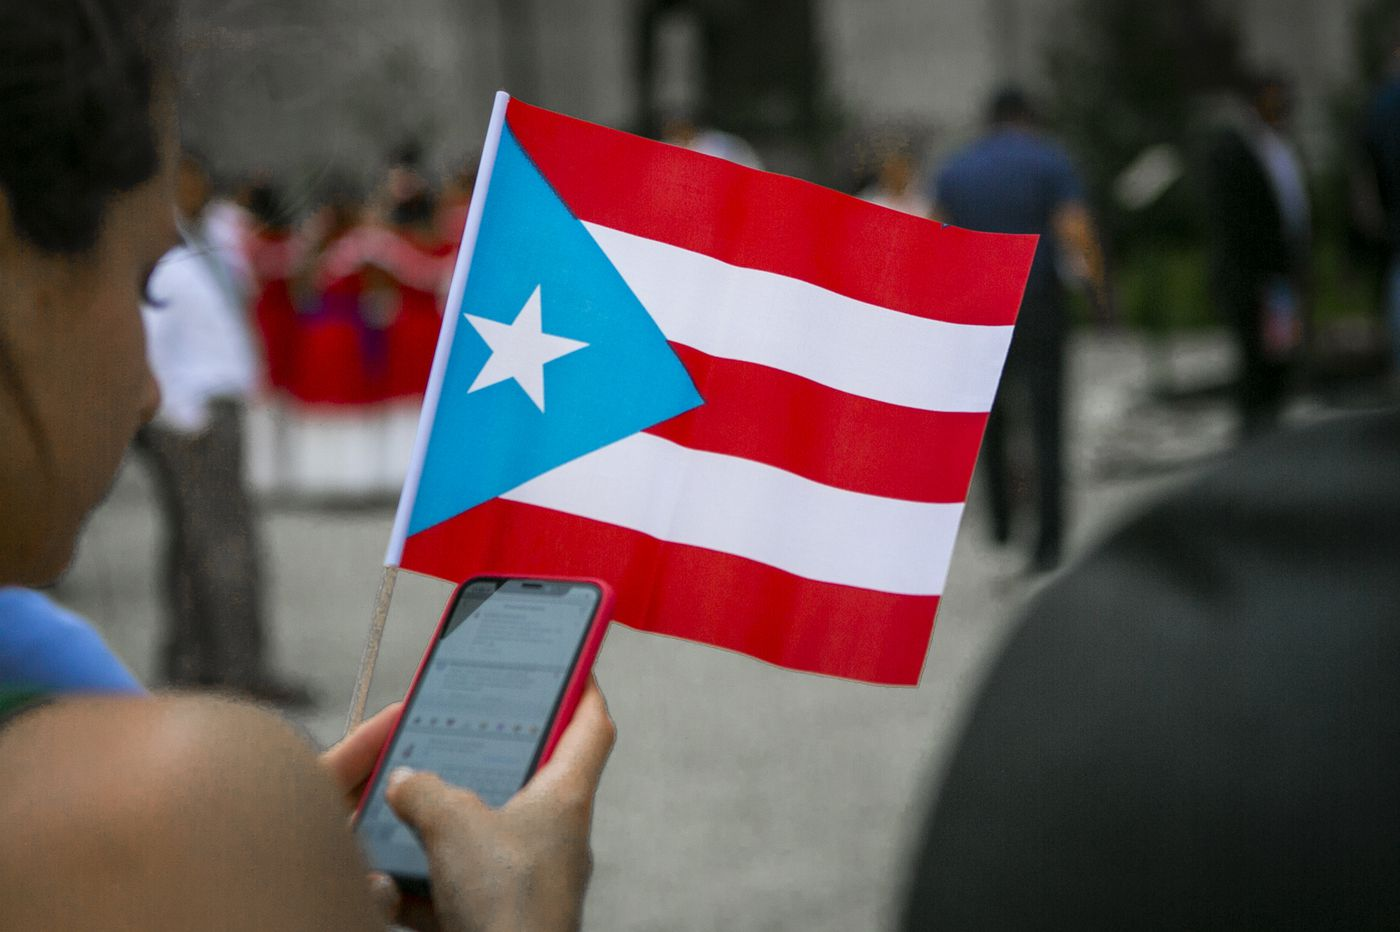 Puerto Rican votes count too | Opinion